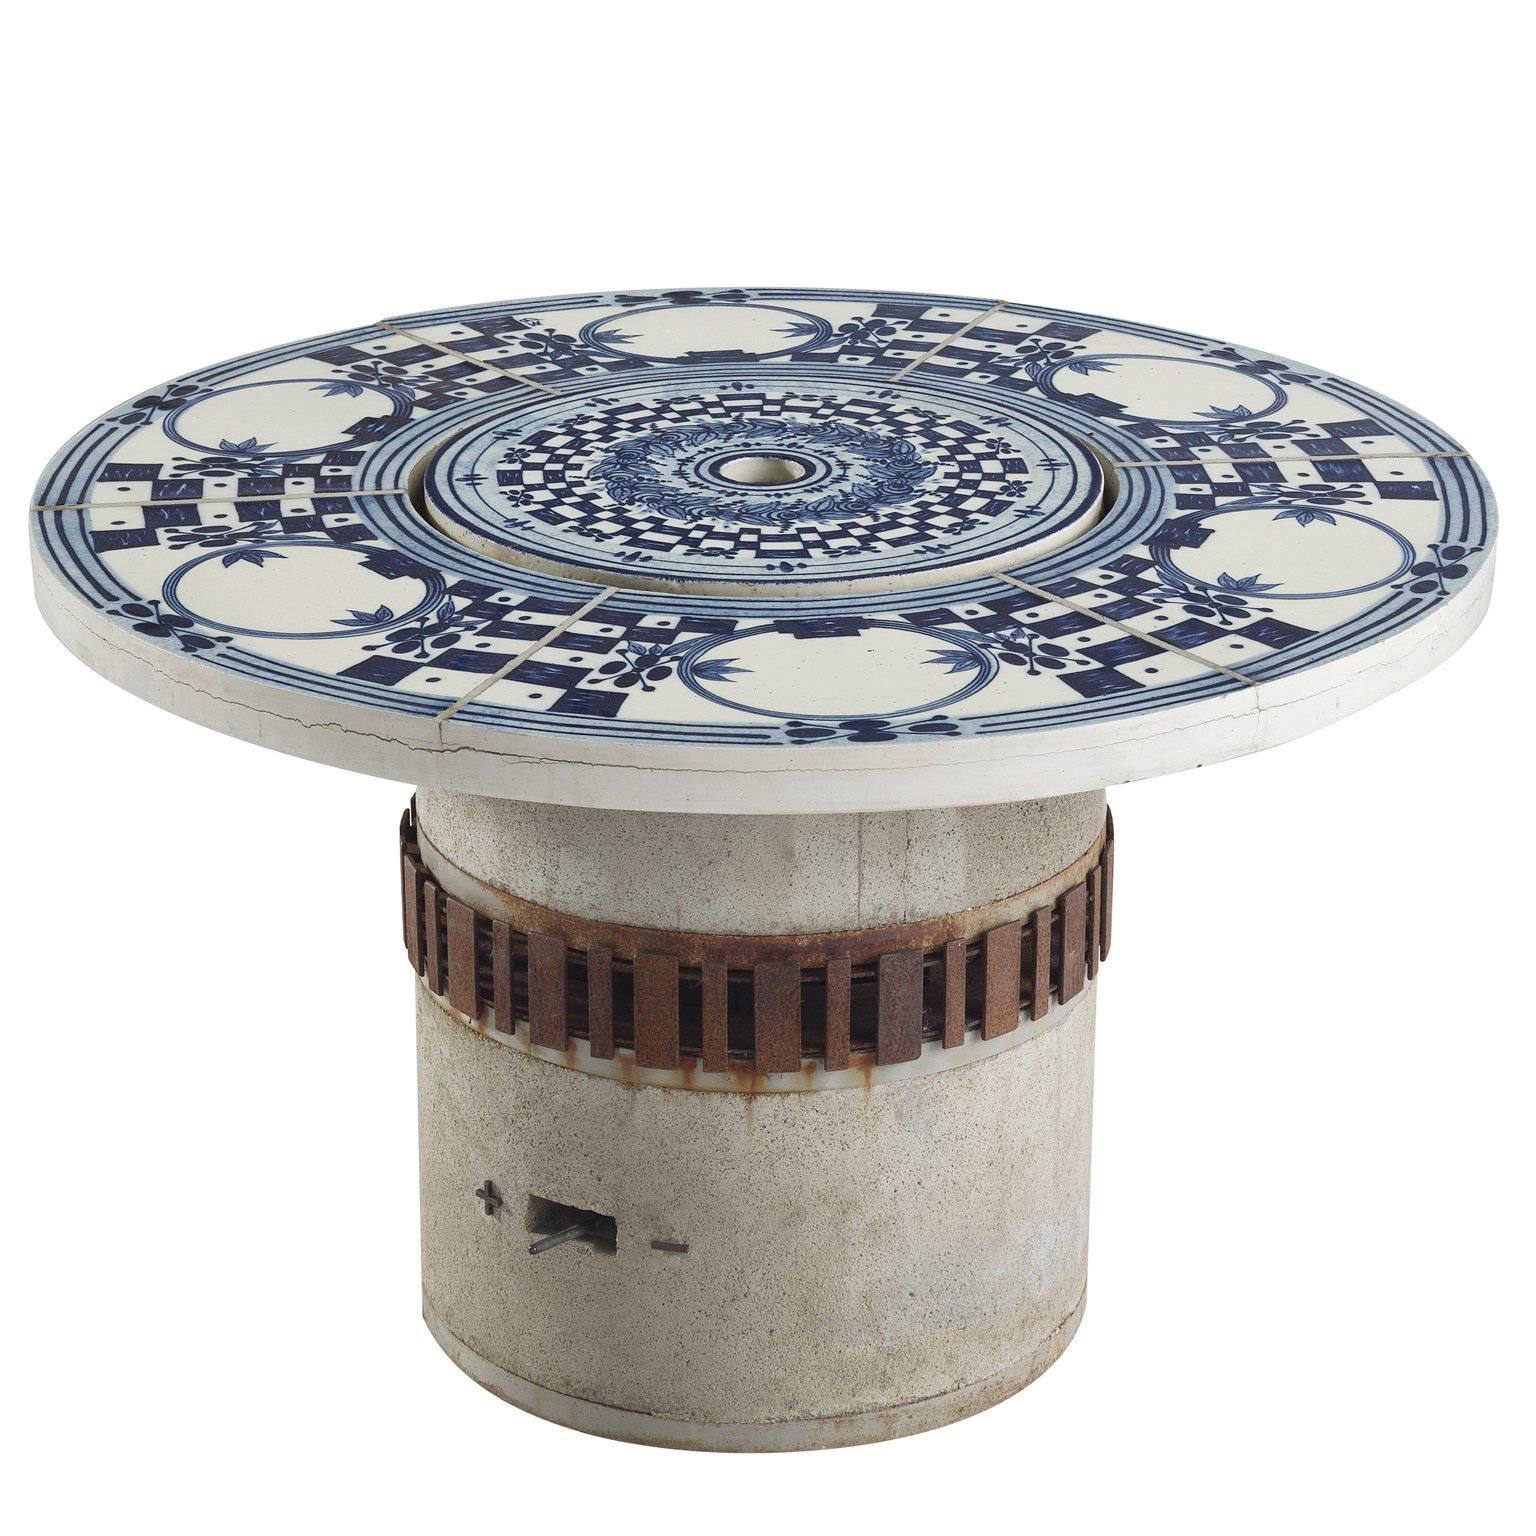 bjorn wiinblad hibachi patio grill table with hand painted ceramic top